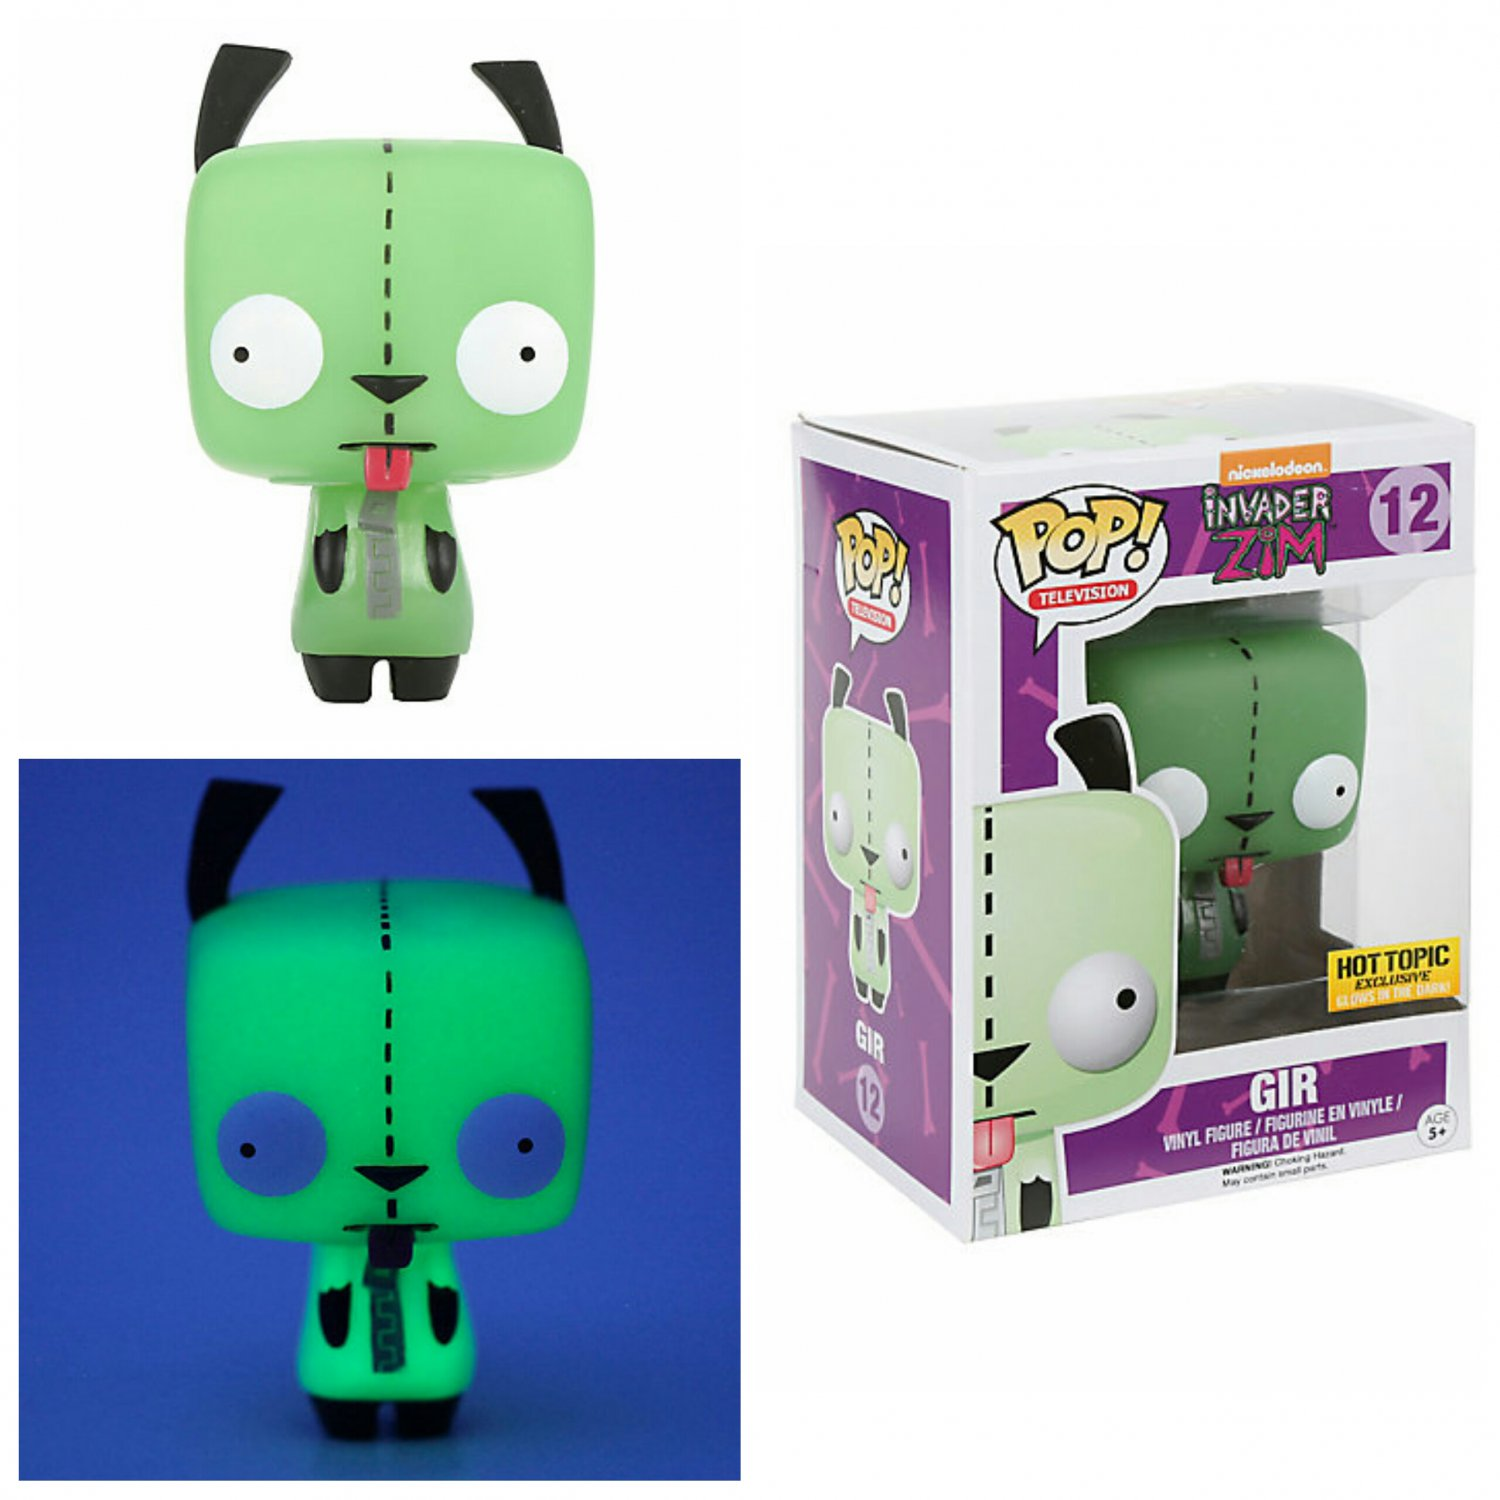 Funko Invader Zim Pop! #12 Television Gir Vinyl Figure Glow-in-the-Dark Hot Topic Exclusive